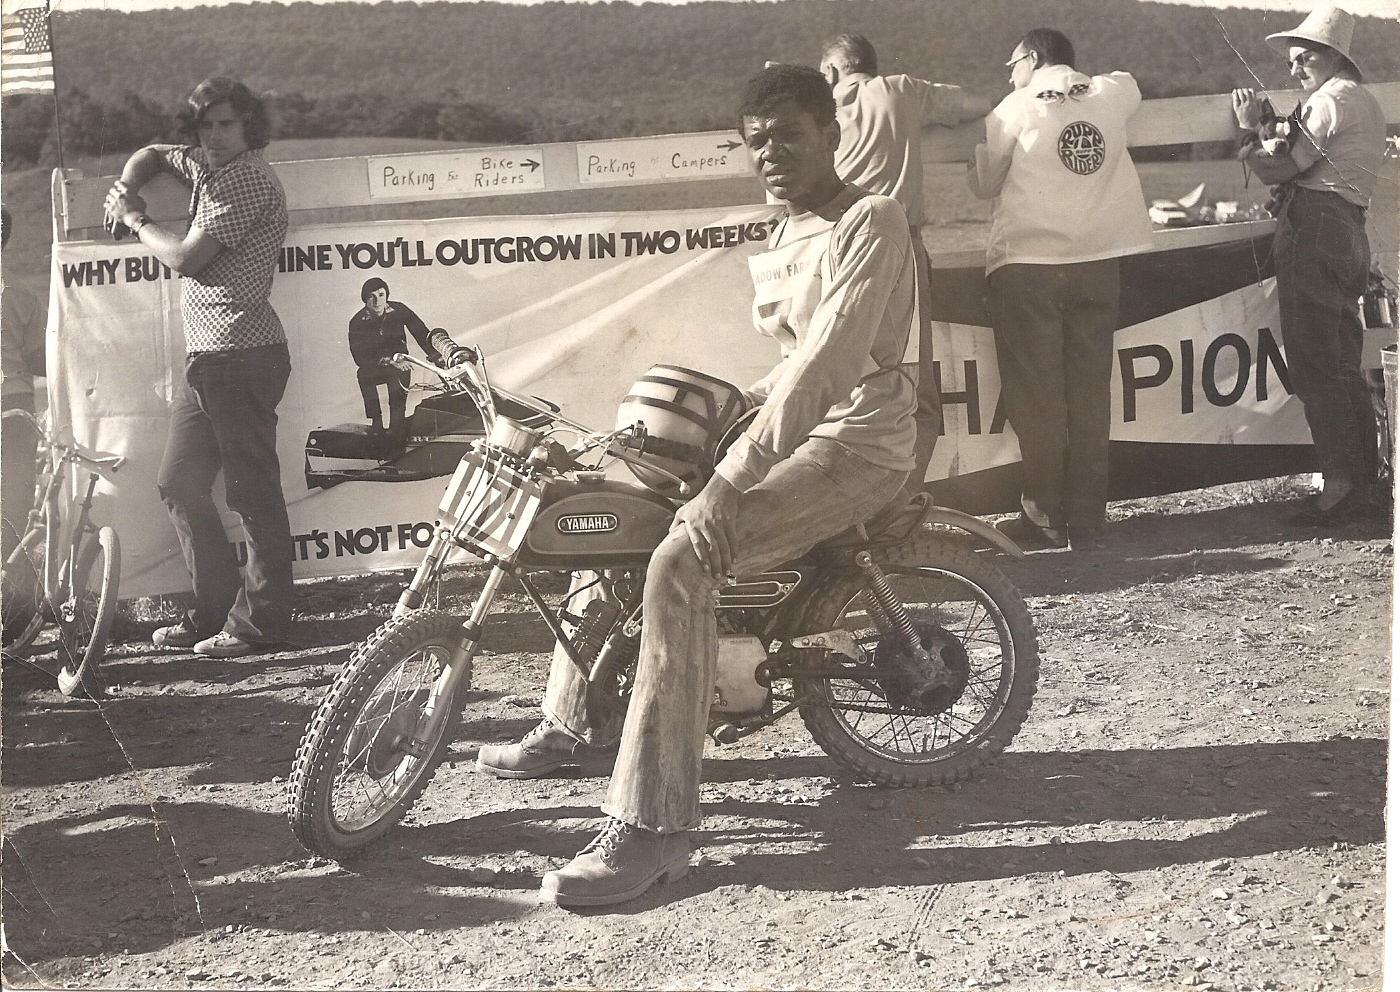 Brian Thompson's first race